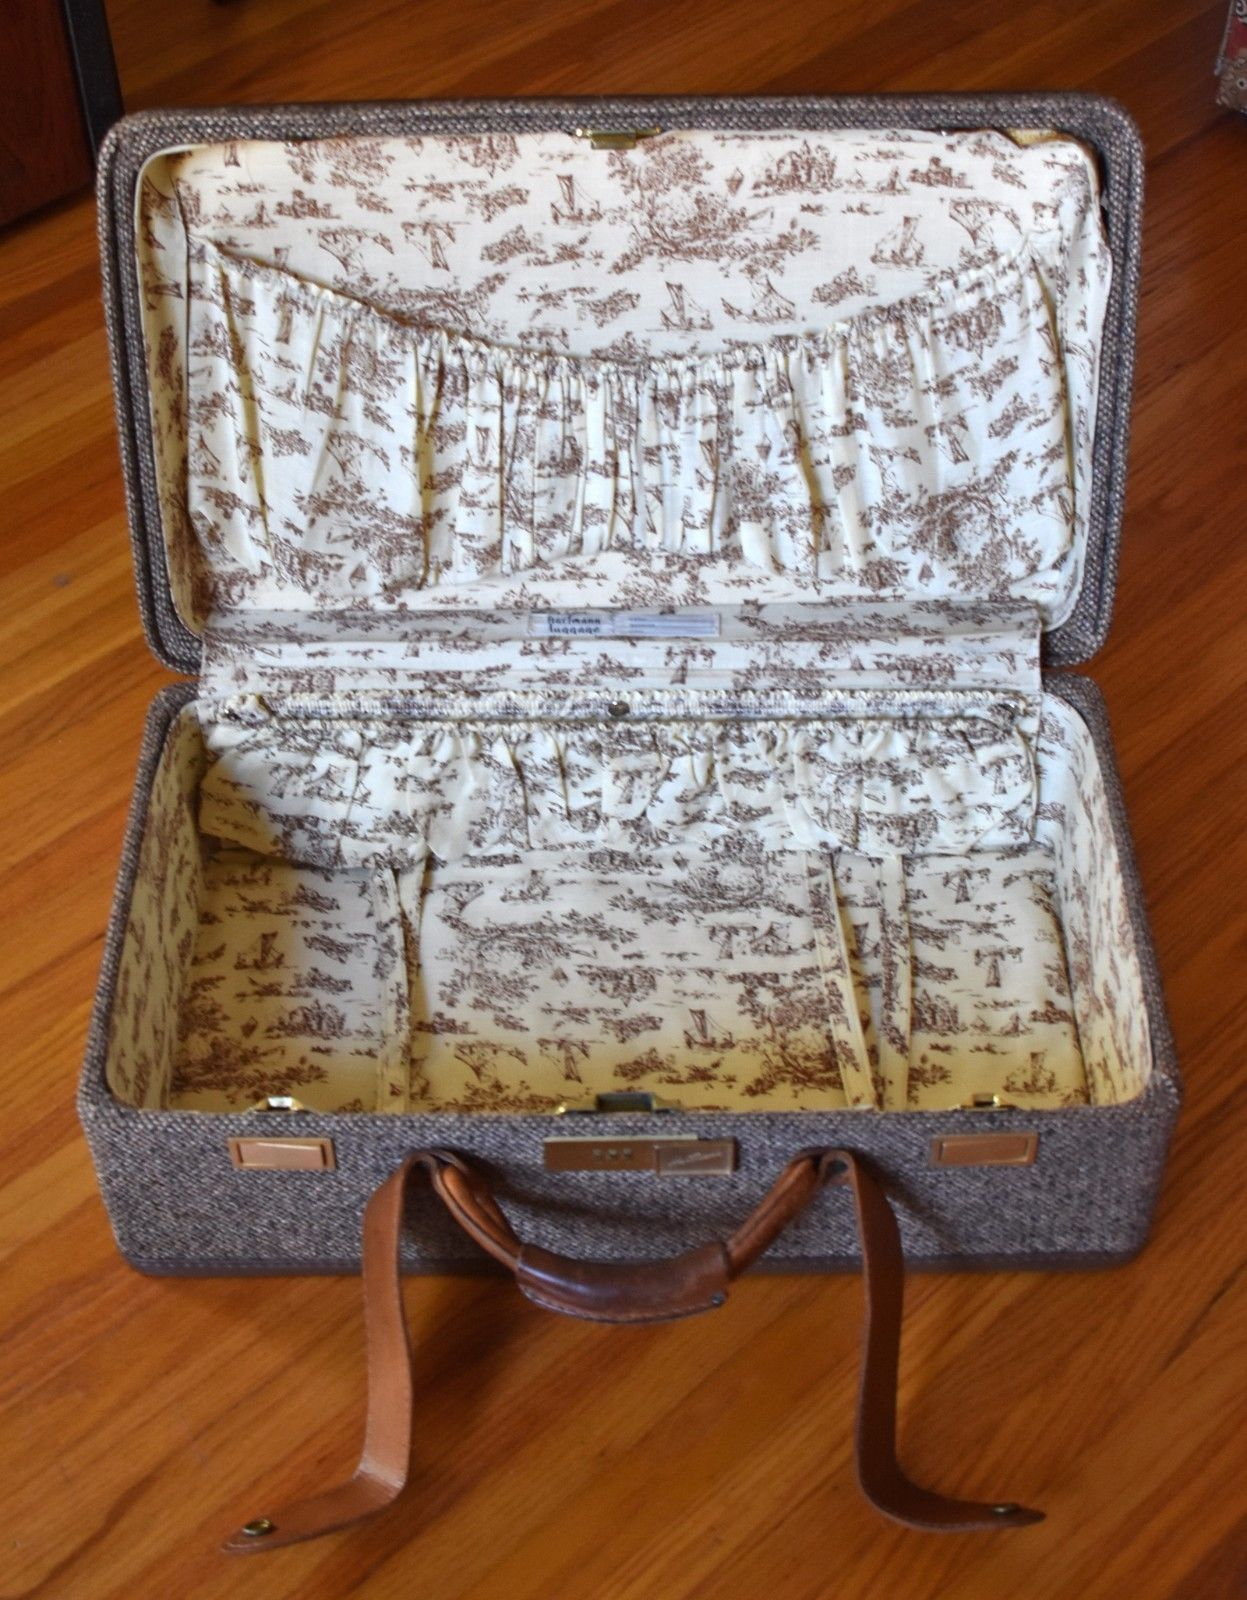 "Vintage Luggage Hartmann Tweed Leather Suitcase - Toile Lining - 21"" x 12"""